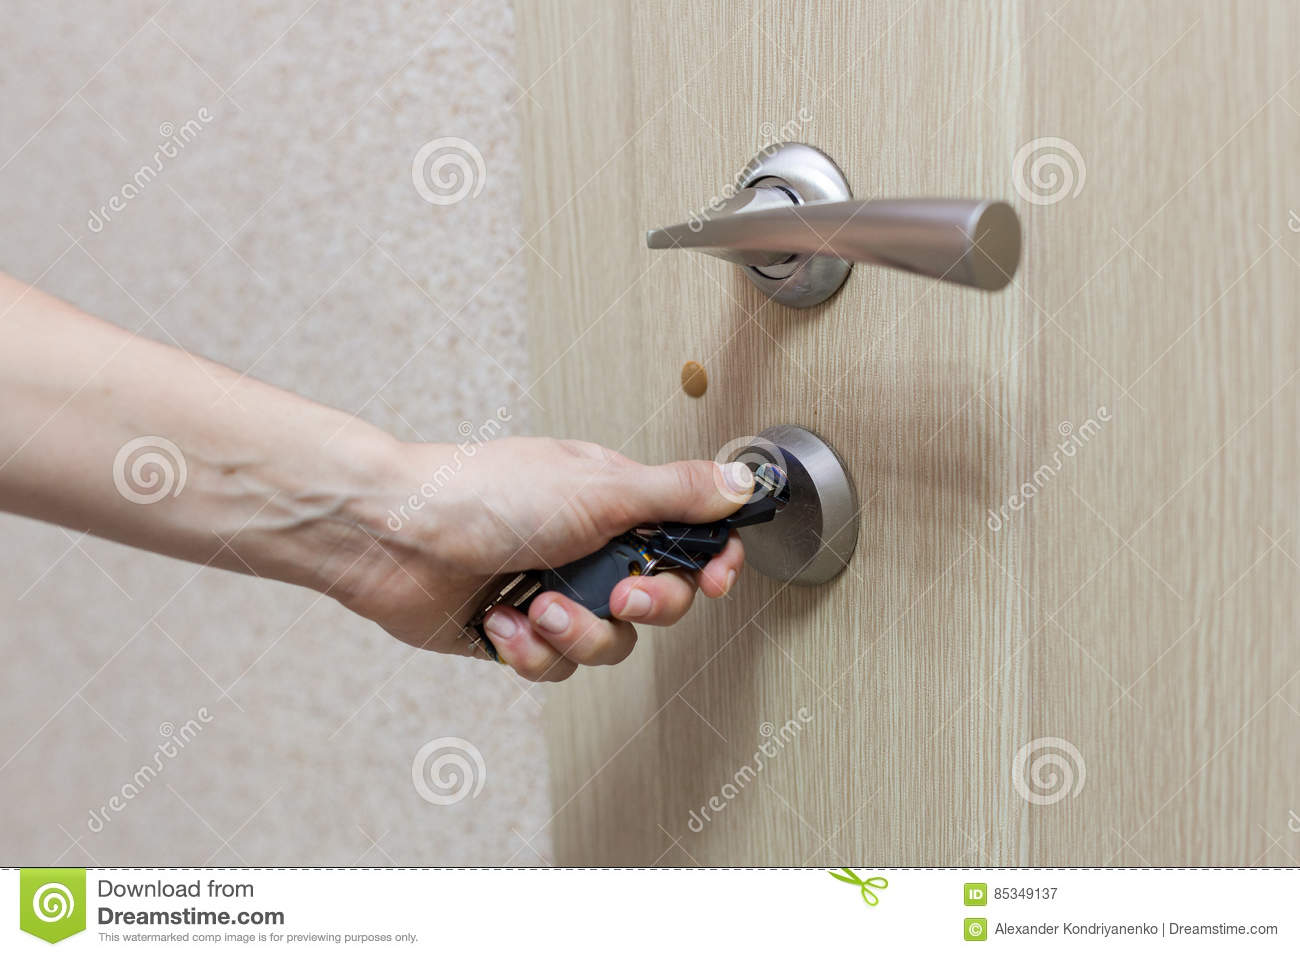 Locking Up Or Unlocking Door With Key In Hand  Stock Image